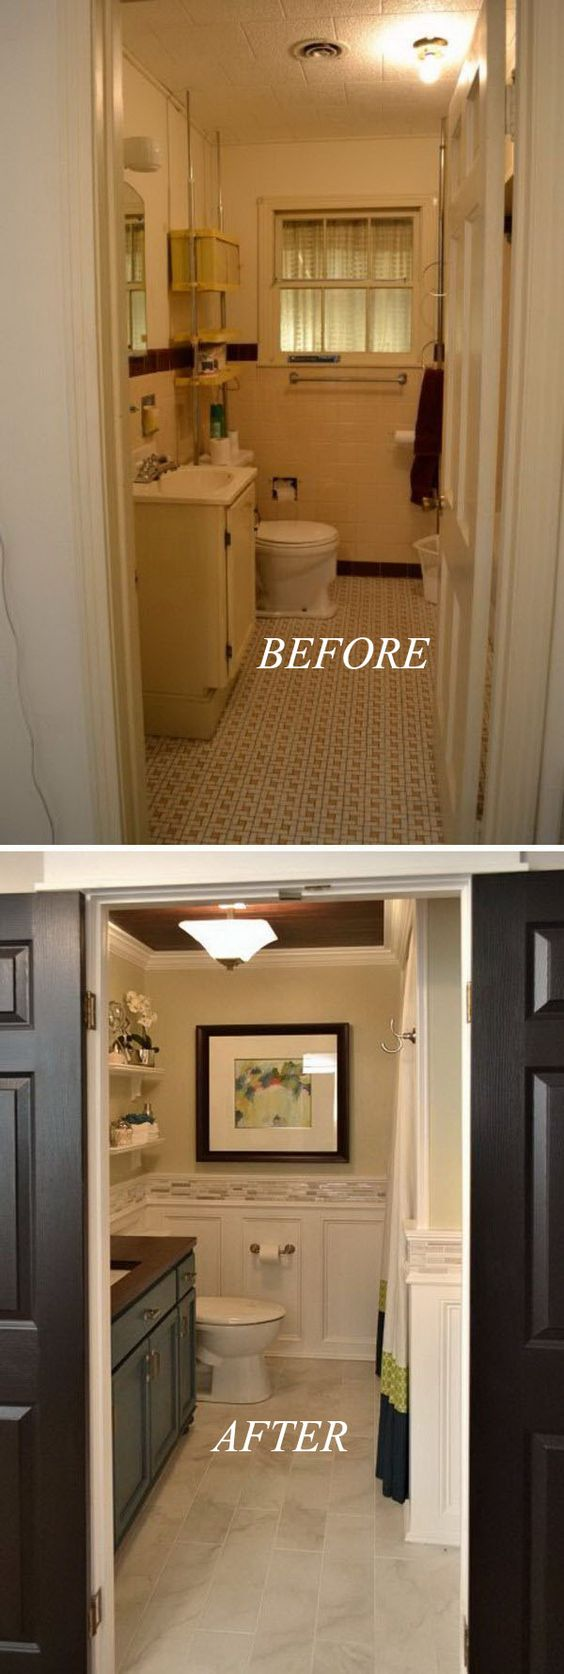 Before and after 20 awesome bathroom makeovers awesome for Small hall bathroom remodel ideas